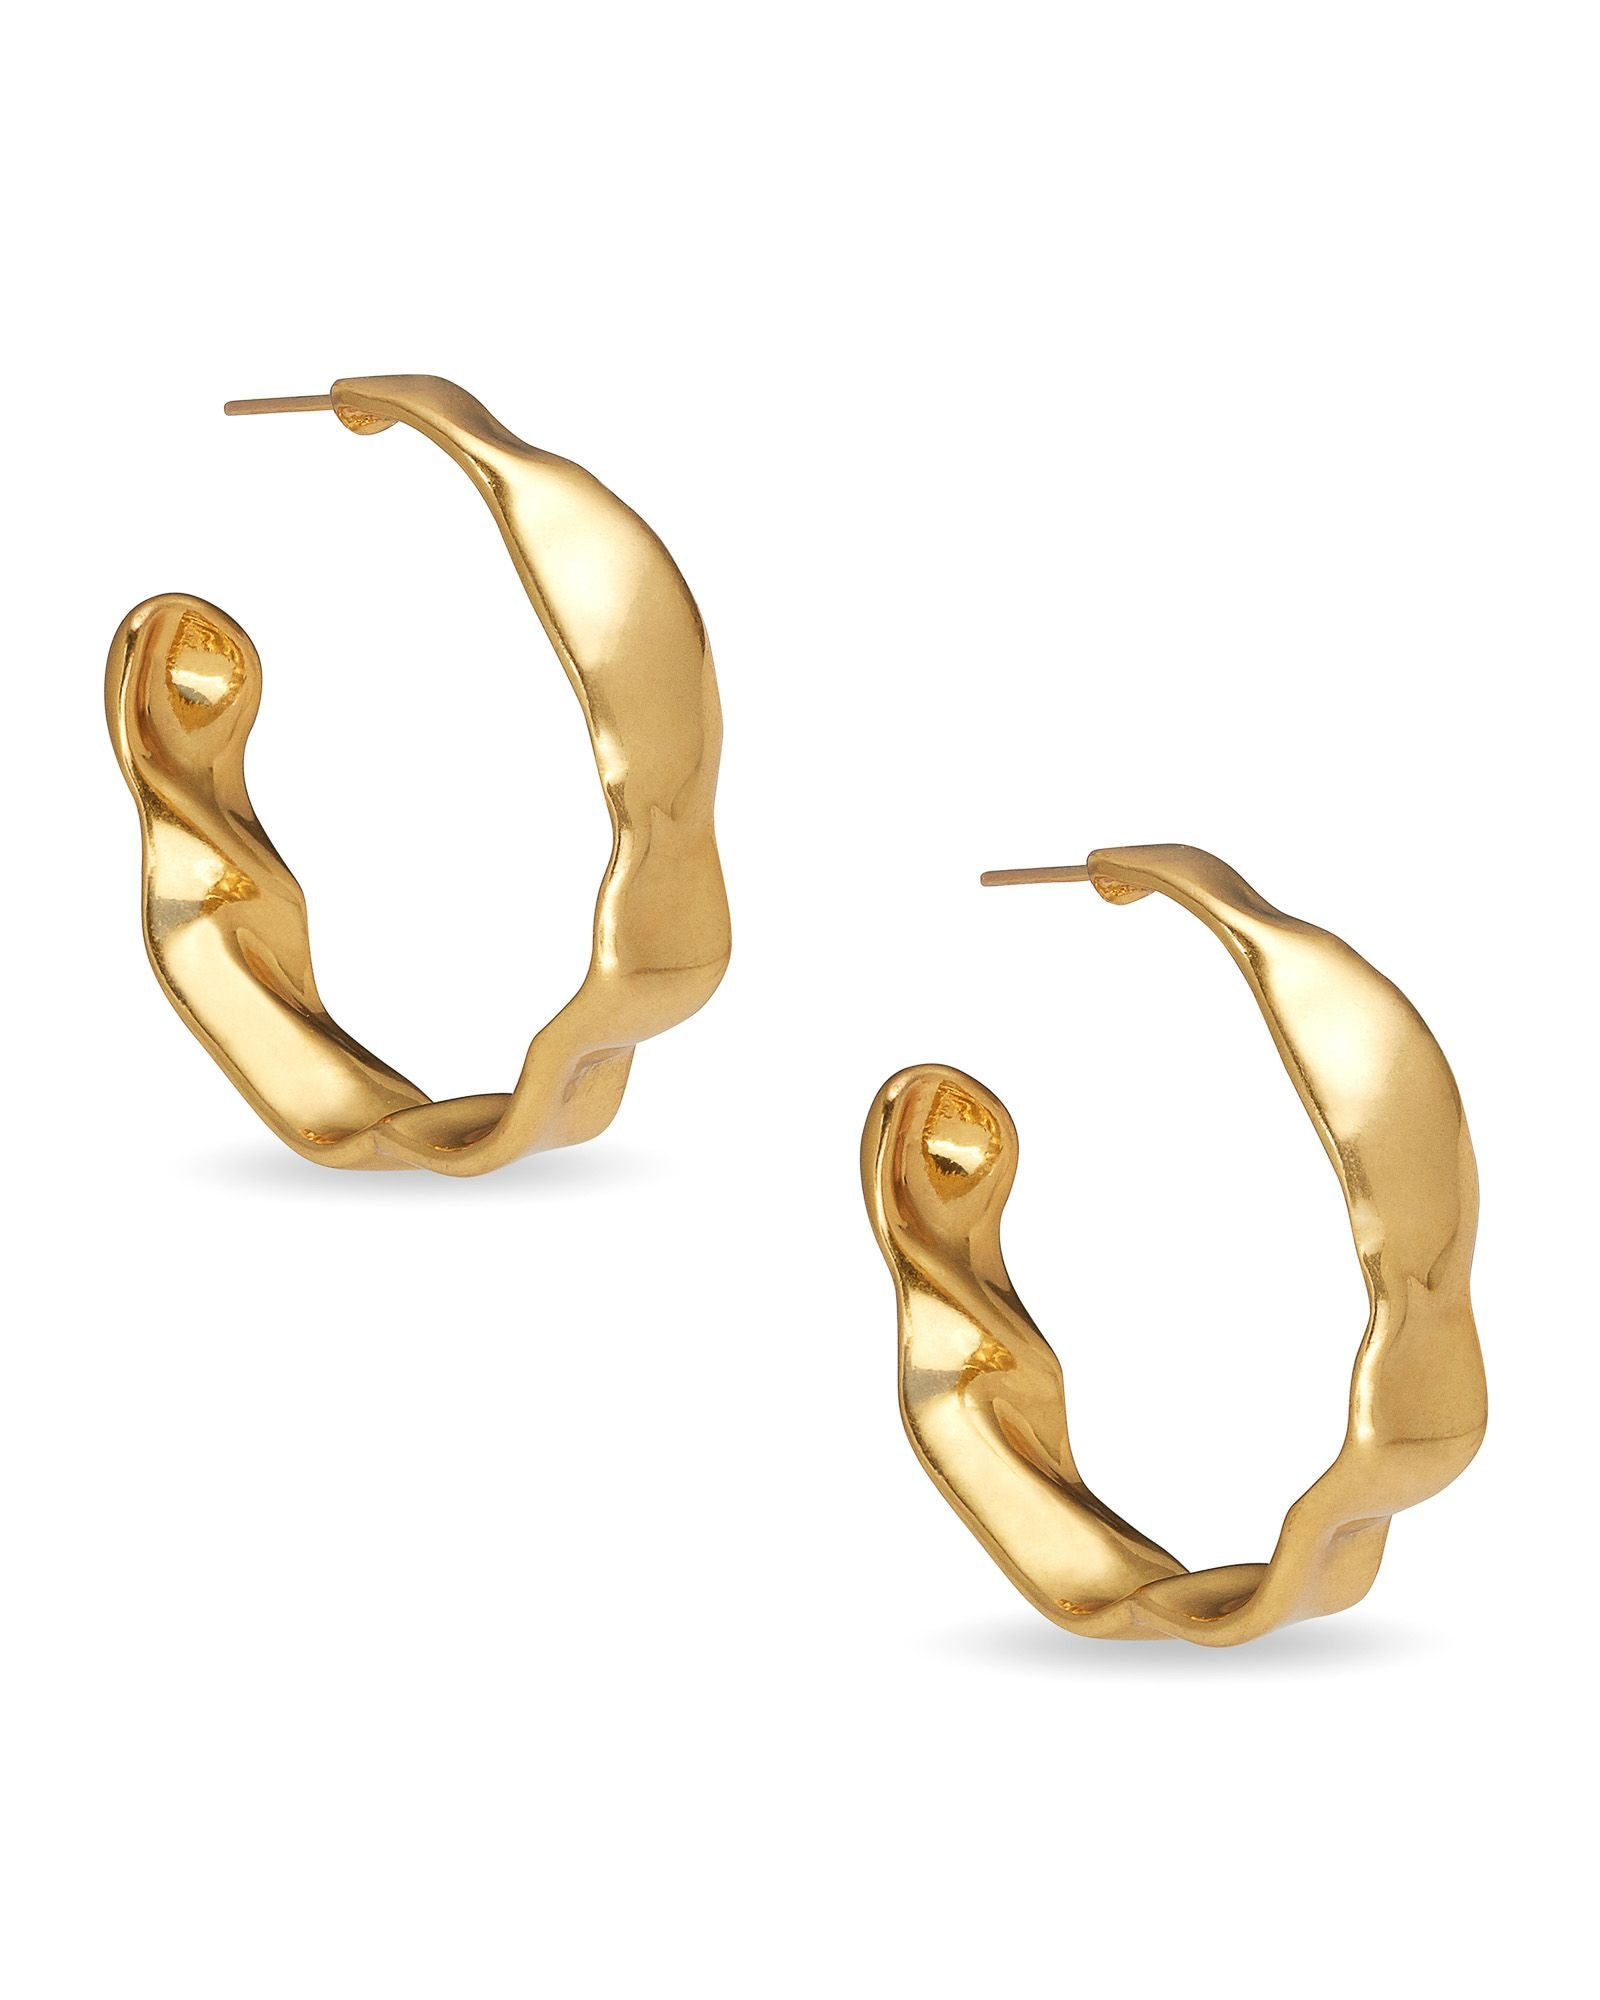 Holland Hoop Earring in Vintage Gold